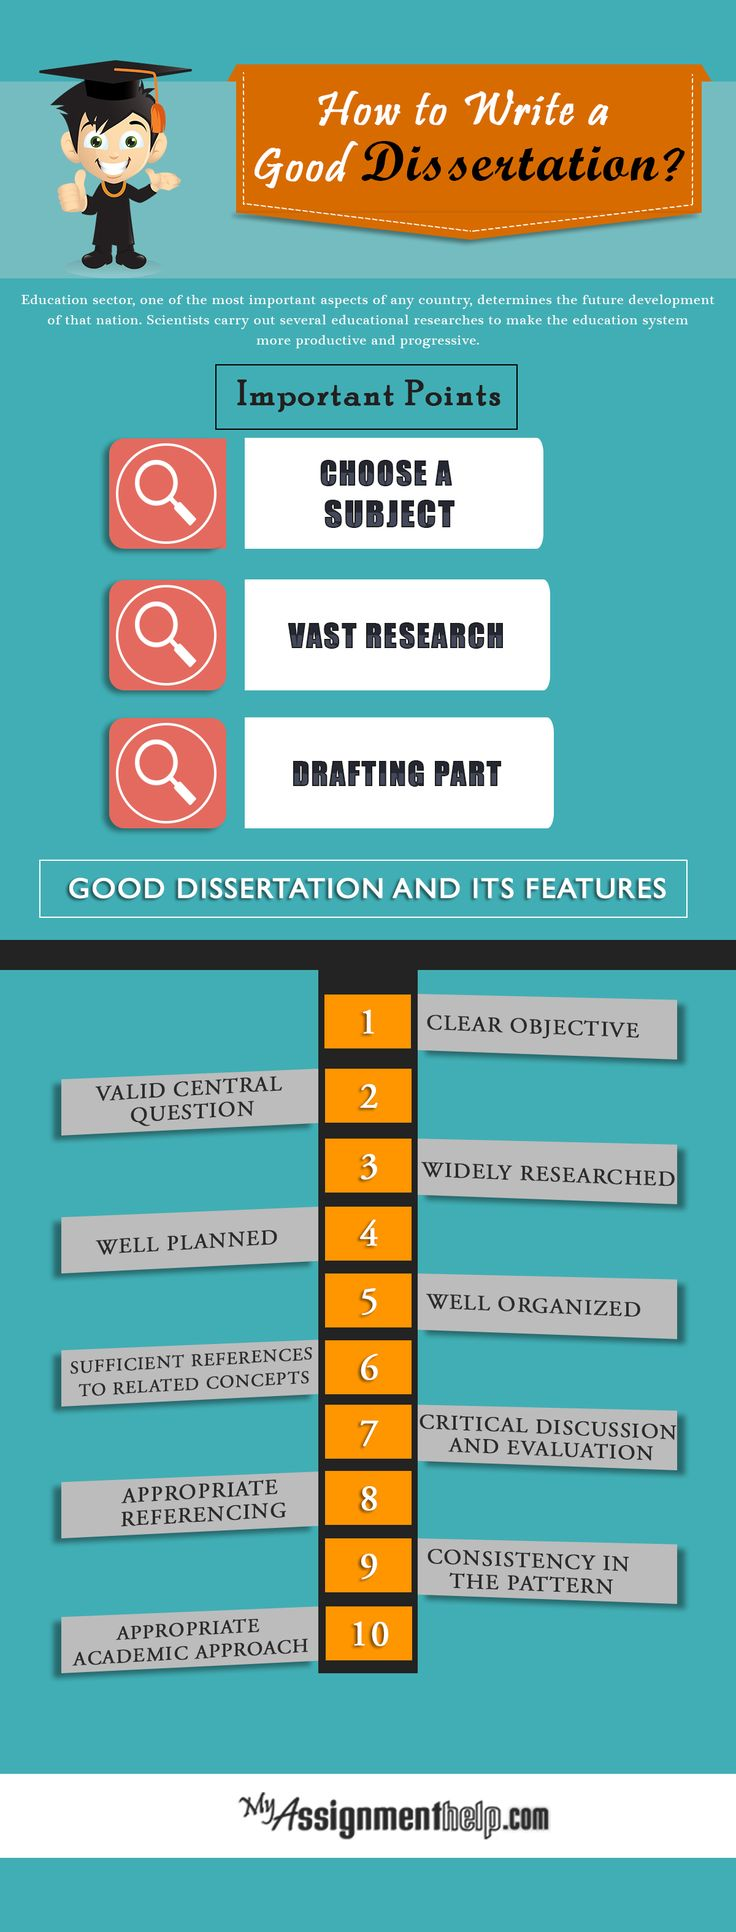 Is it hard to write a dissertation? - Quora